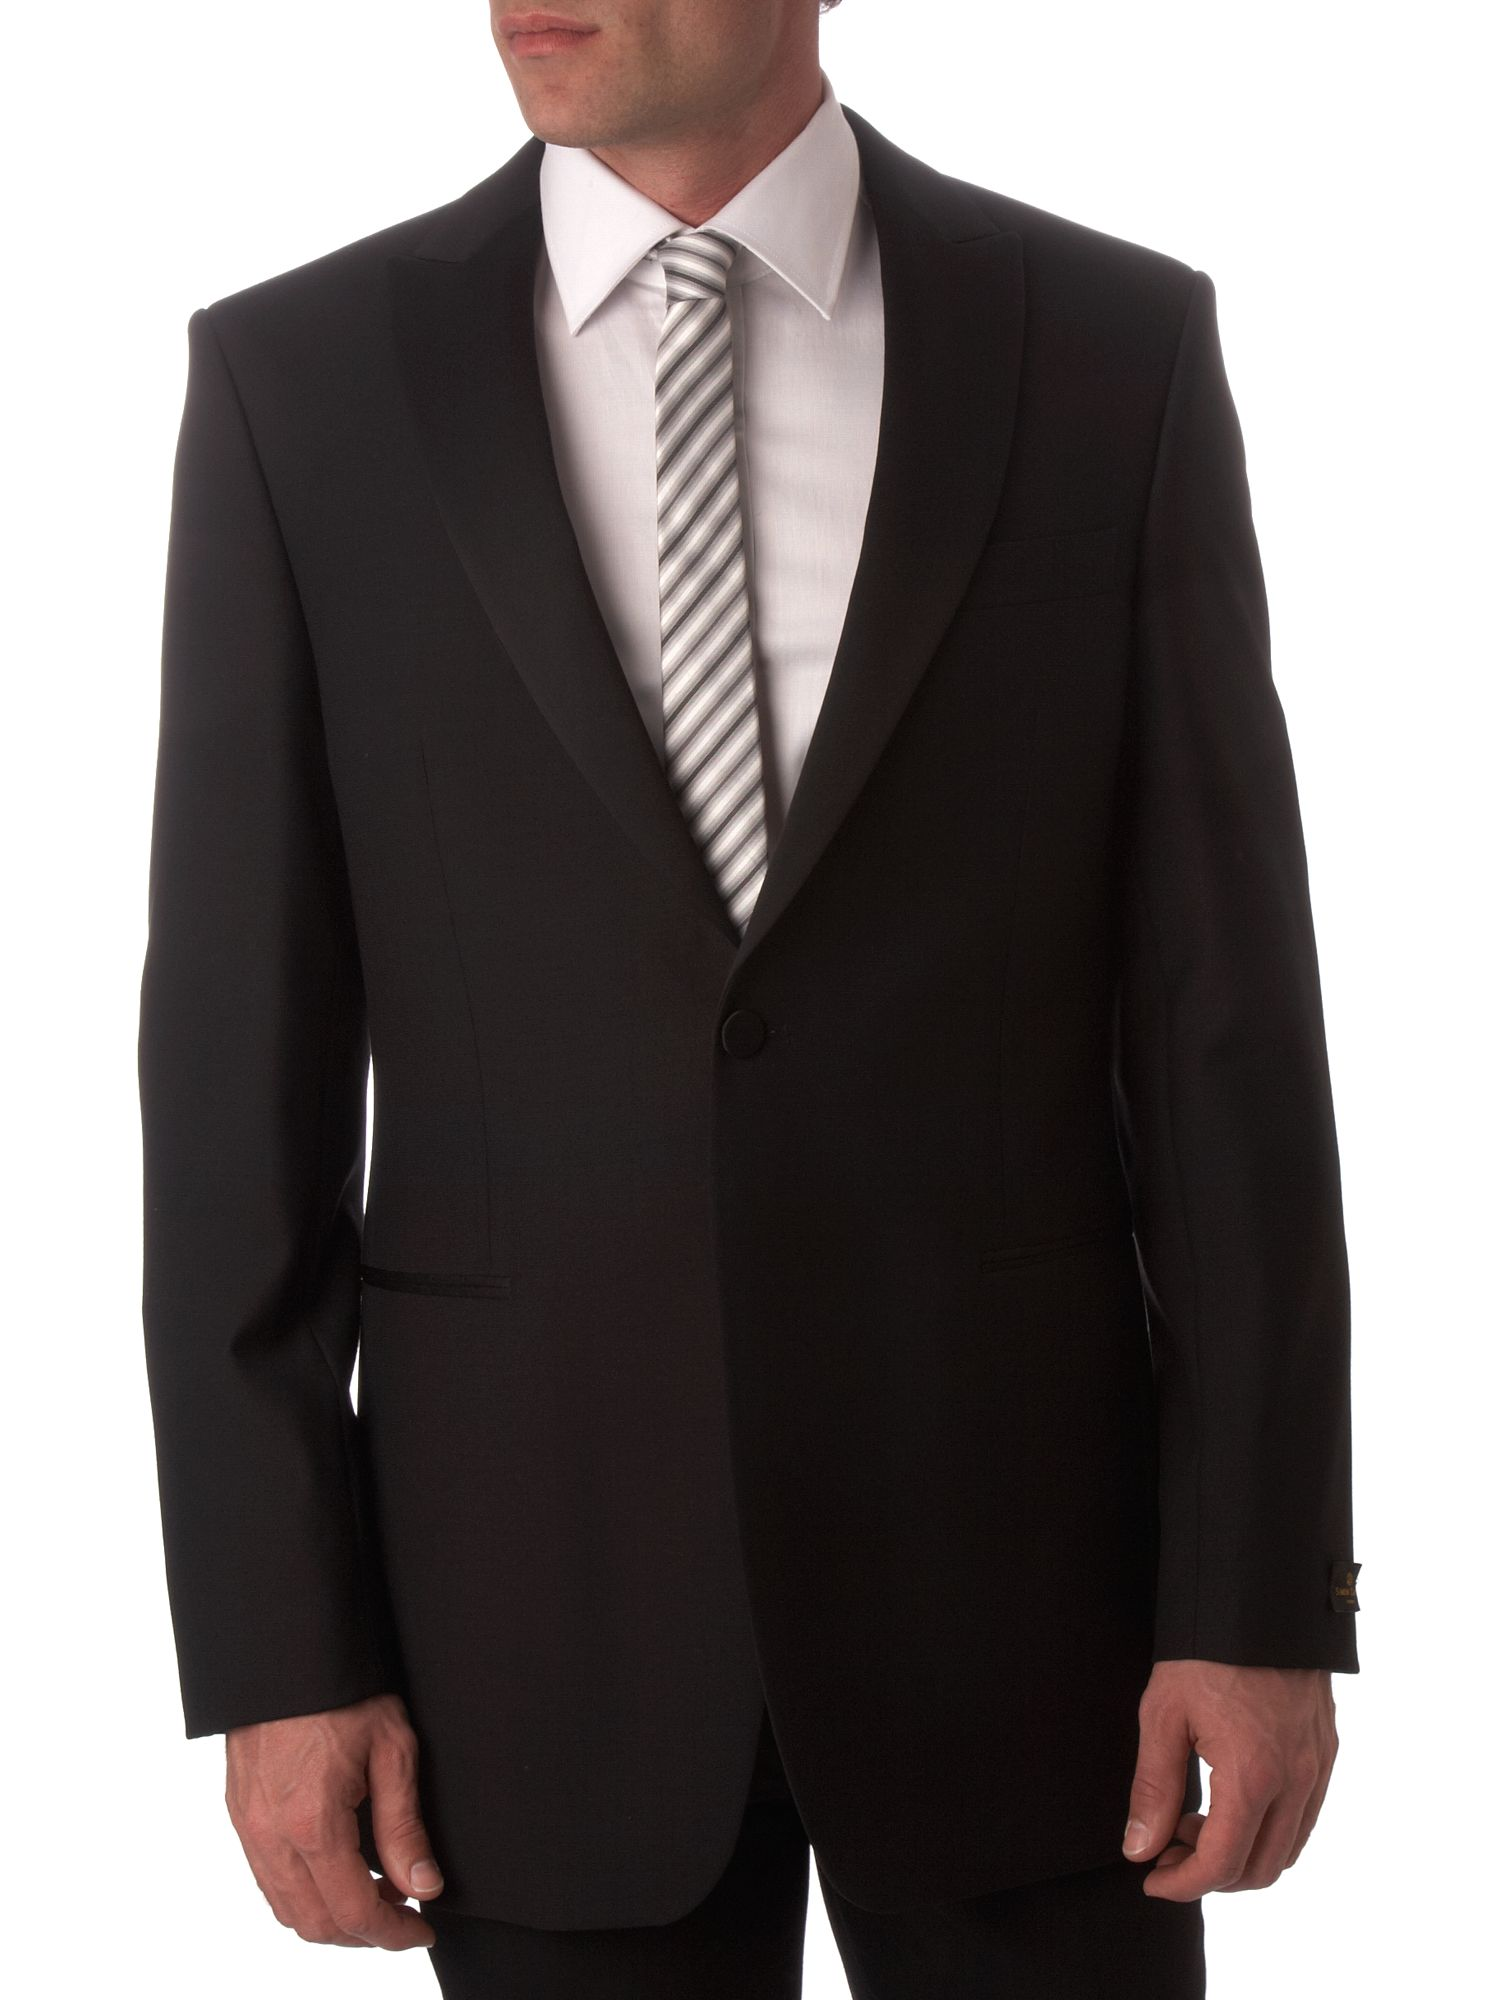 Men's Simon Carter Single breasted formal dinner suit jacket, Black